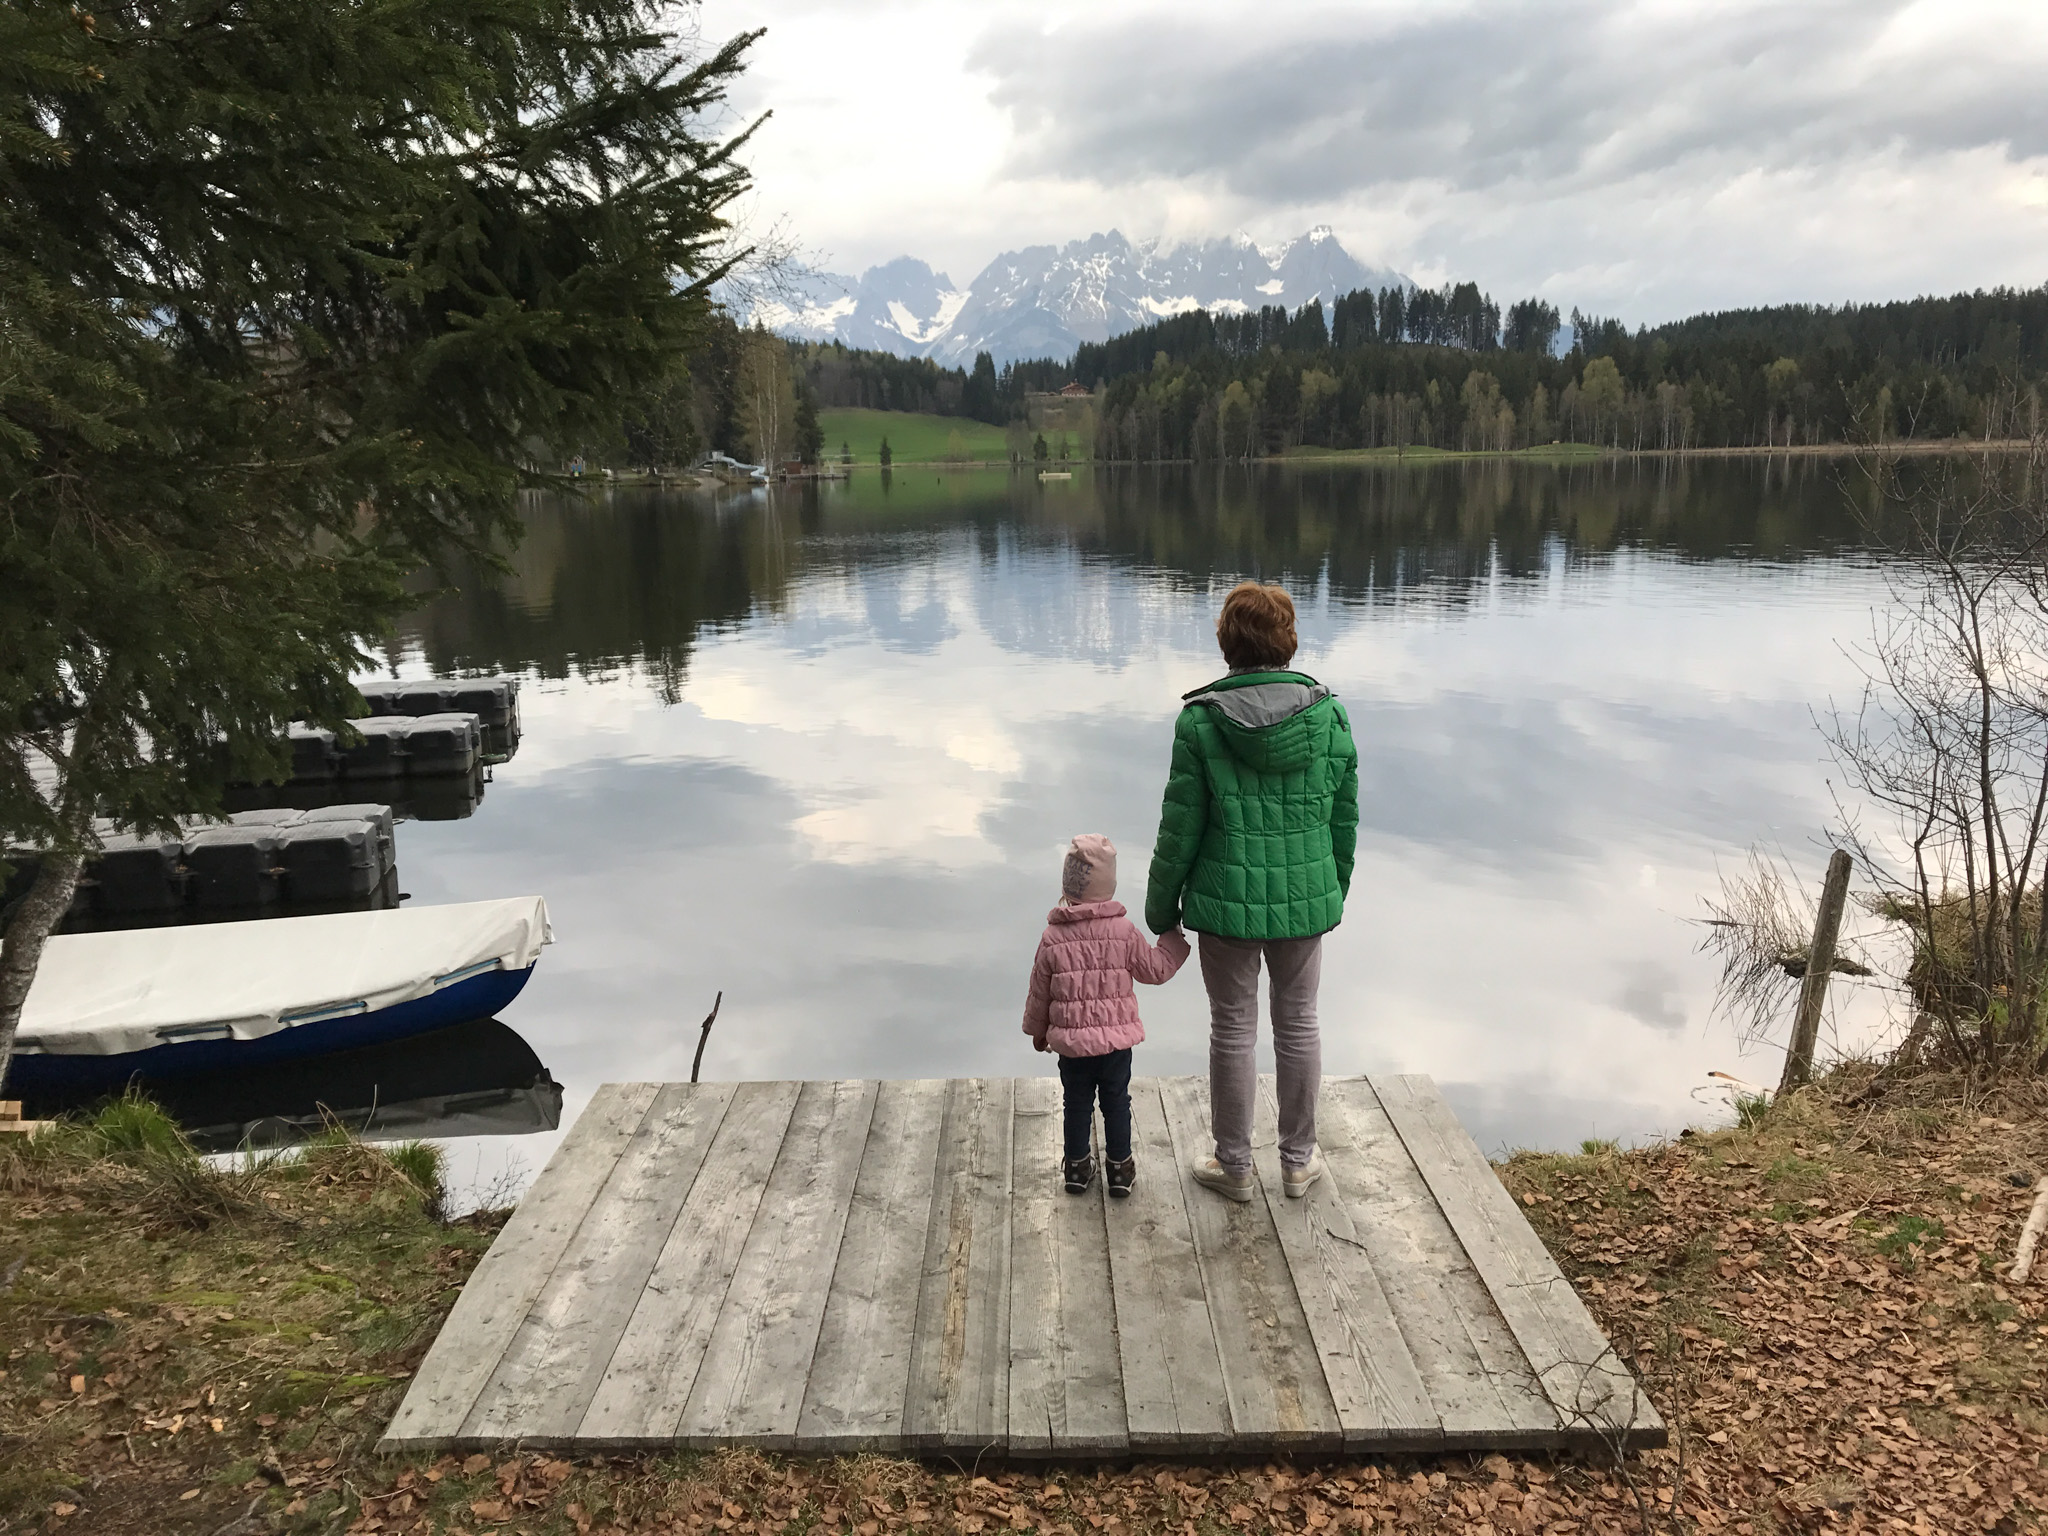 Woman and child starring at the lake where mountains reflect